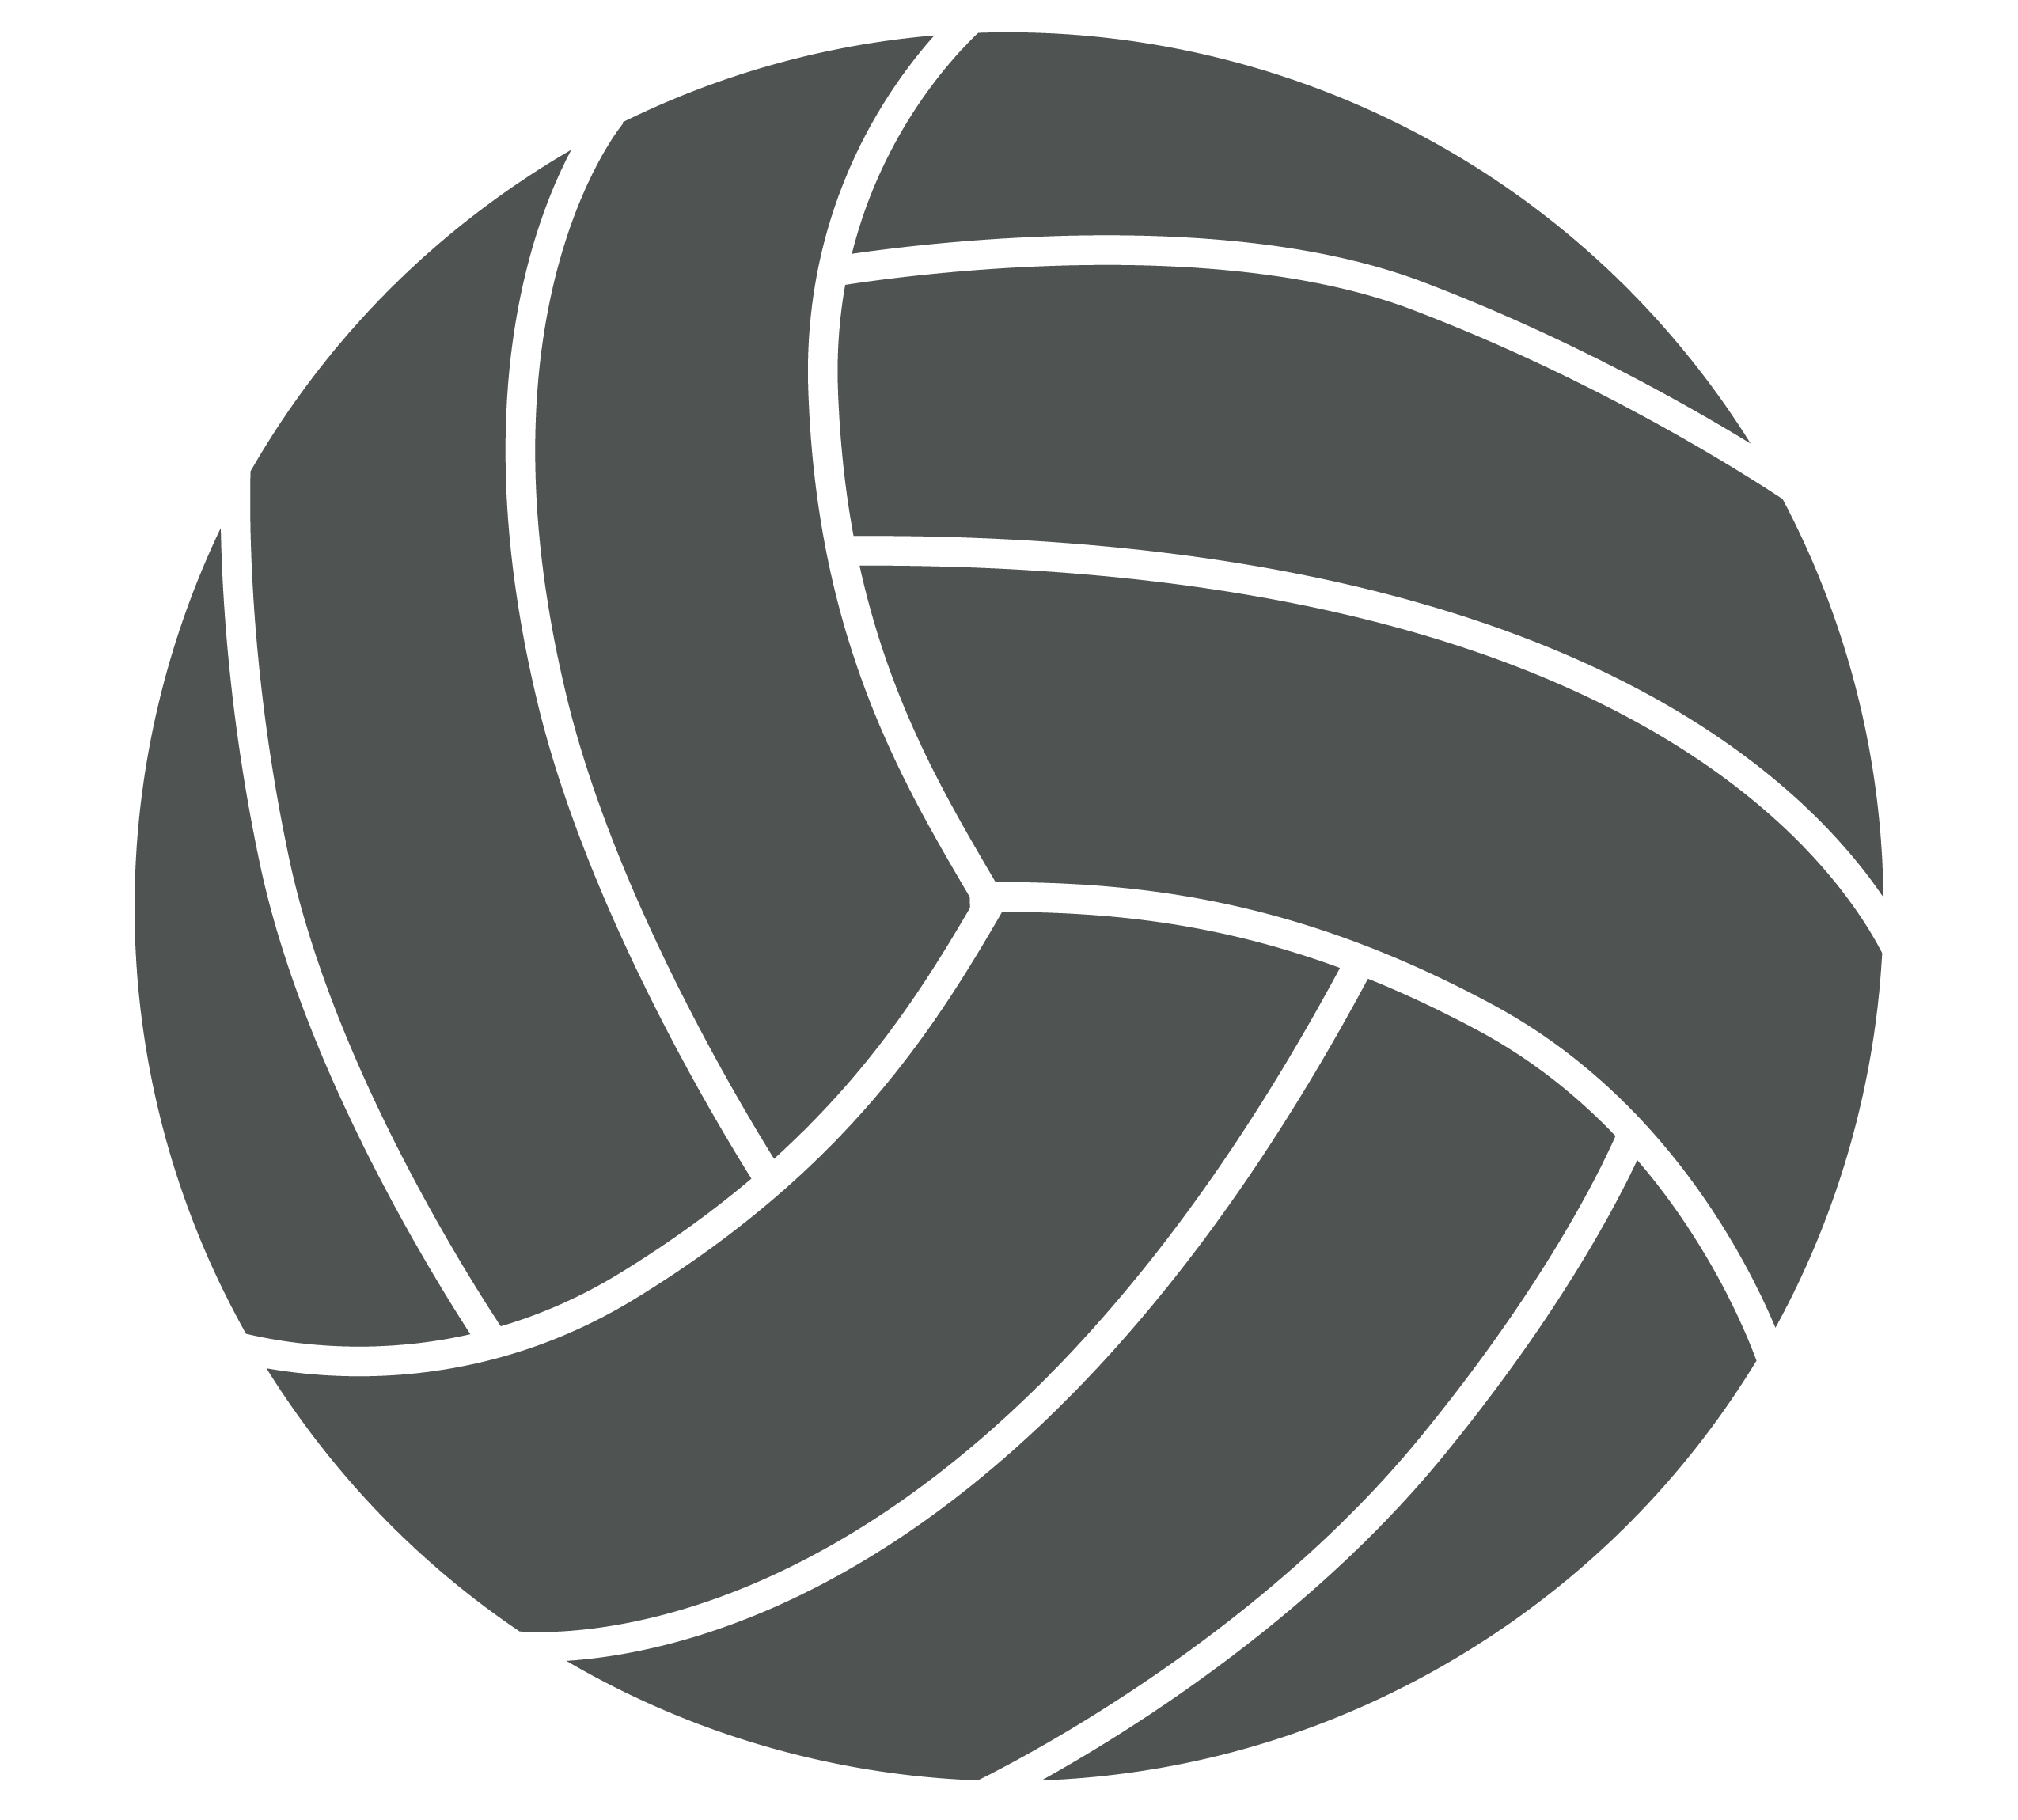 volleyball .png